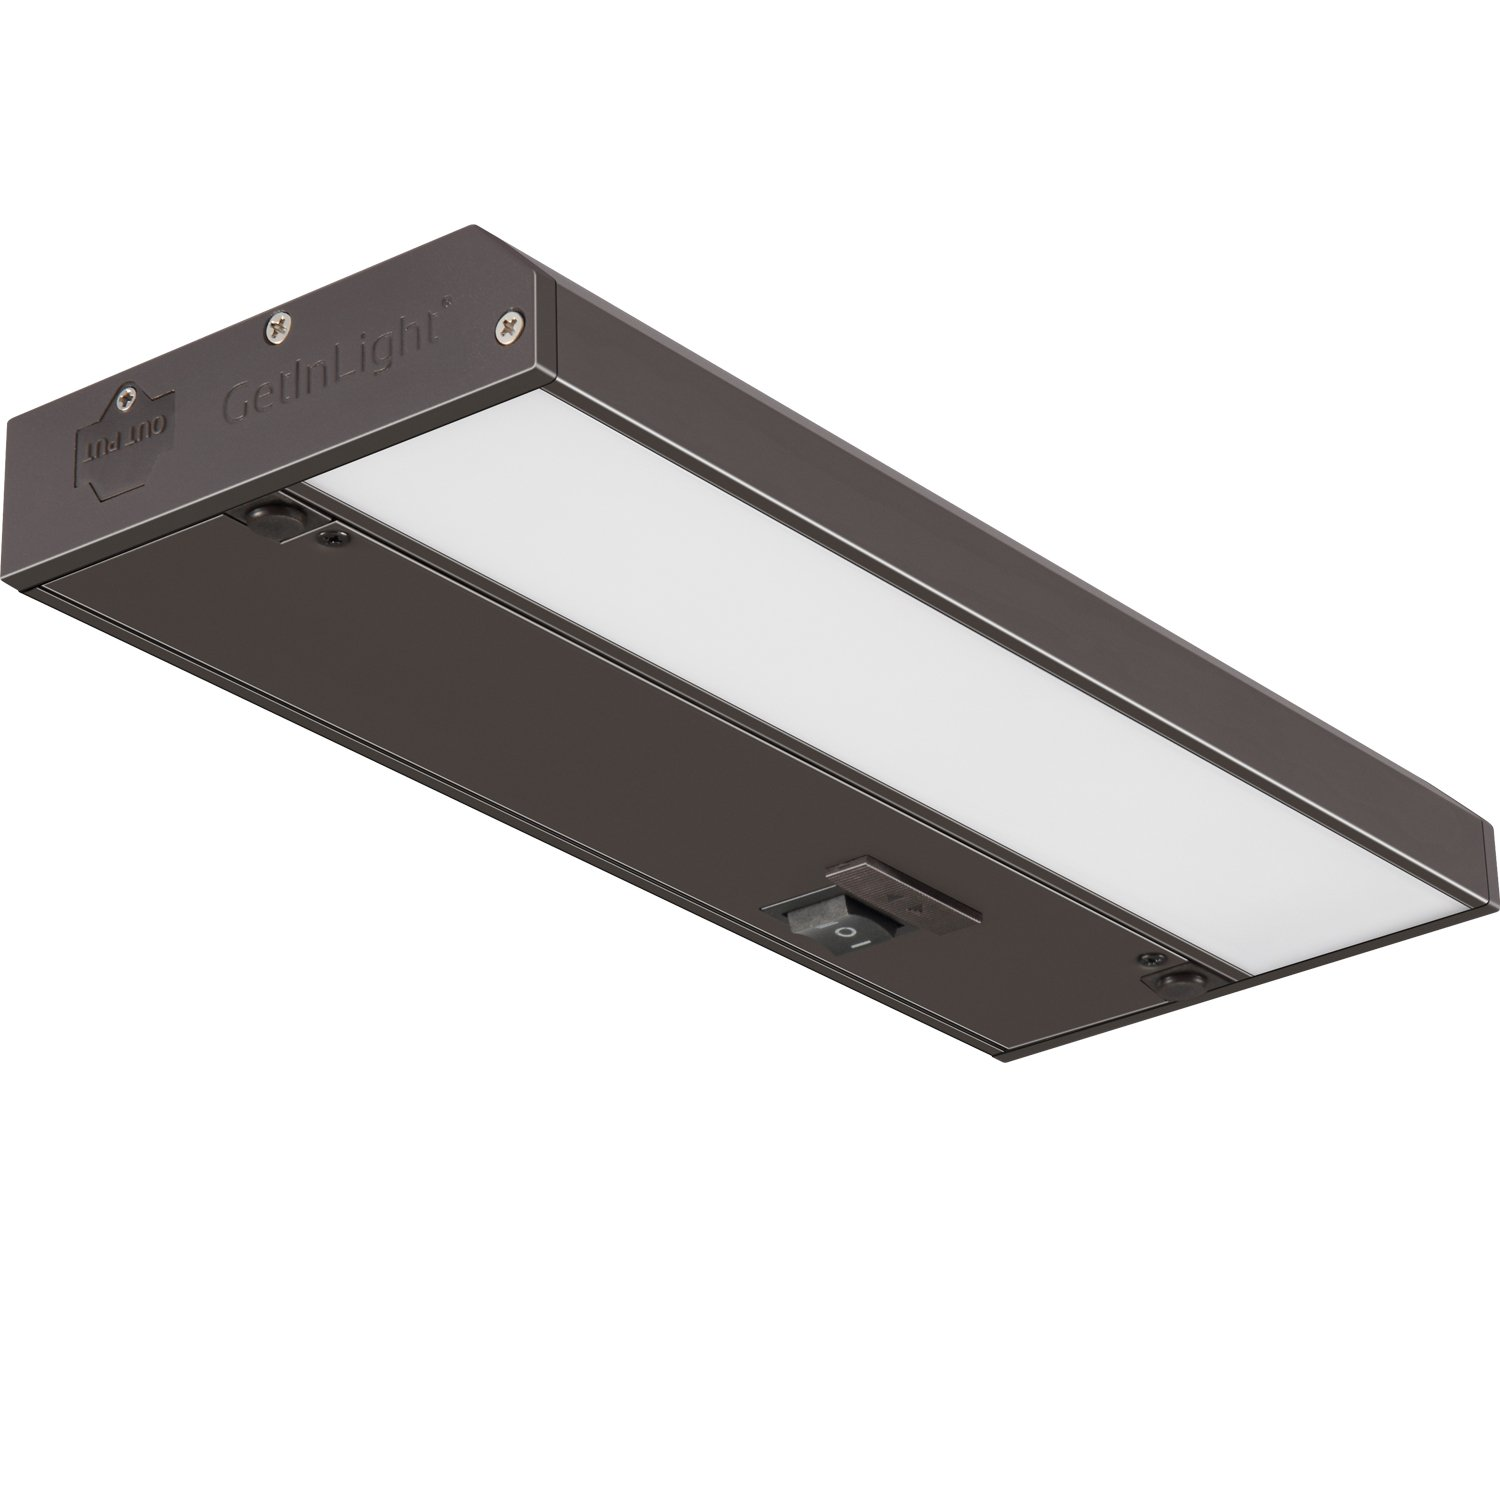 GetInLight 3 Color Levels Dimmable LED Under Cabinet Lighting with ETL Listed, Warm White (2700K), Soft White (3000K), Bright White (4000K), Bronze Finished, 9-inch, IN-0210-0-BZ by GetInLight